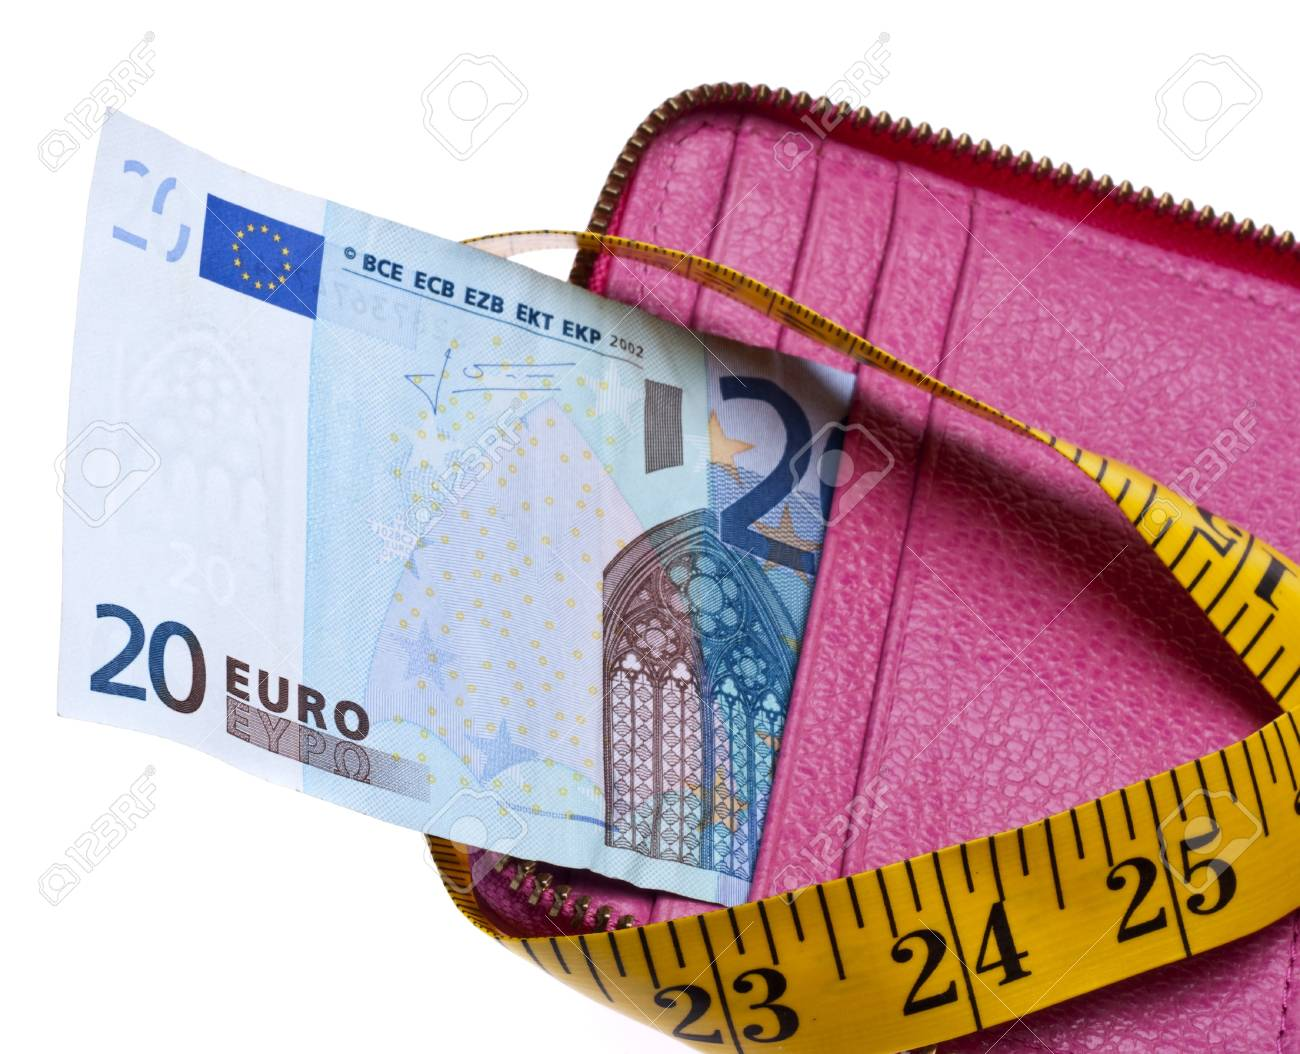 Tight Budget Concept with Open Wallet with Money Squeezed by a Measuring Tape. Stock Photo - 7747130